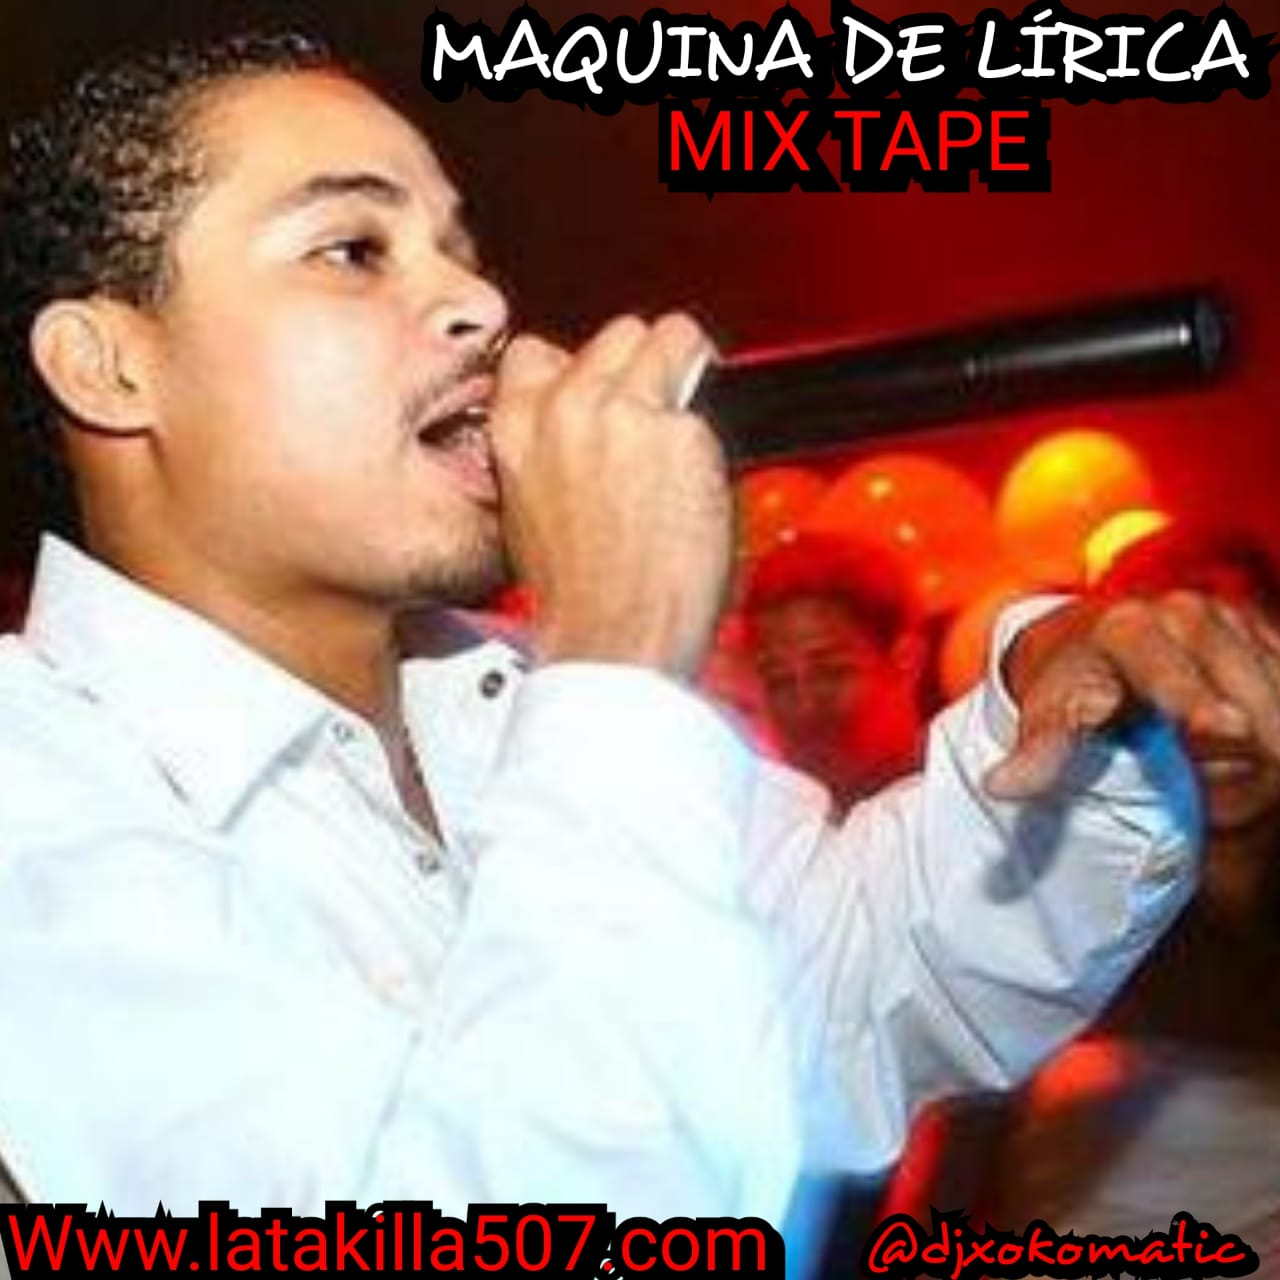 Makina de Lirica Mixtape by Dj Xokomatic.mp3